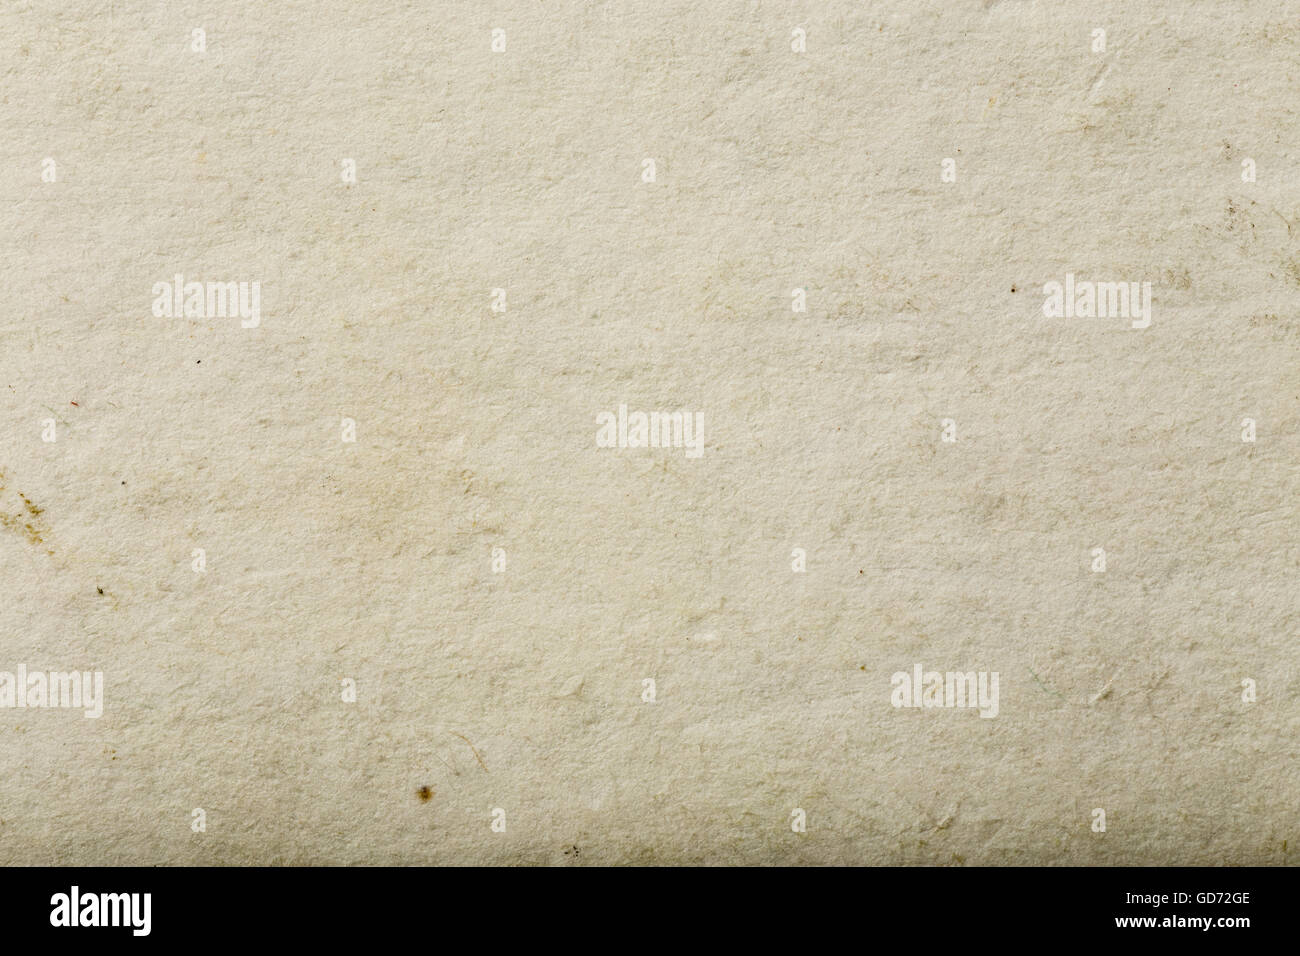 Vintage paper texture background with copy space - Stock Image